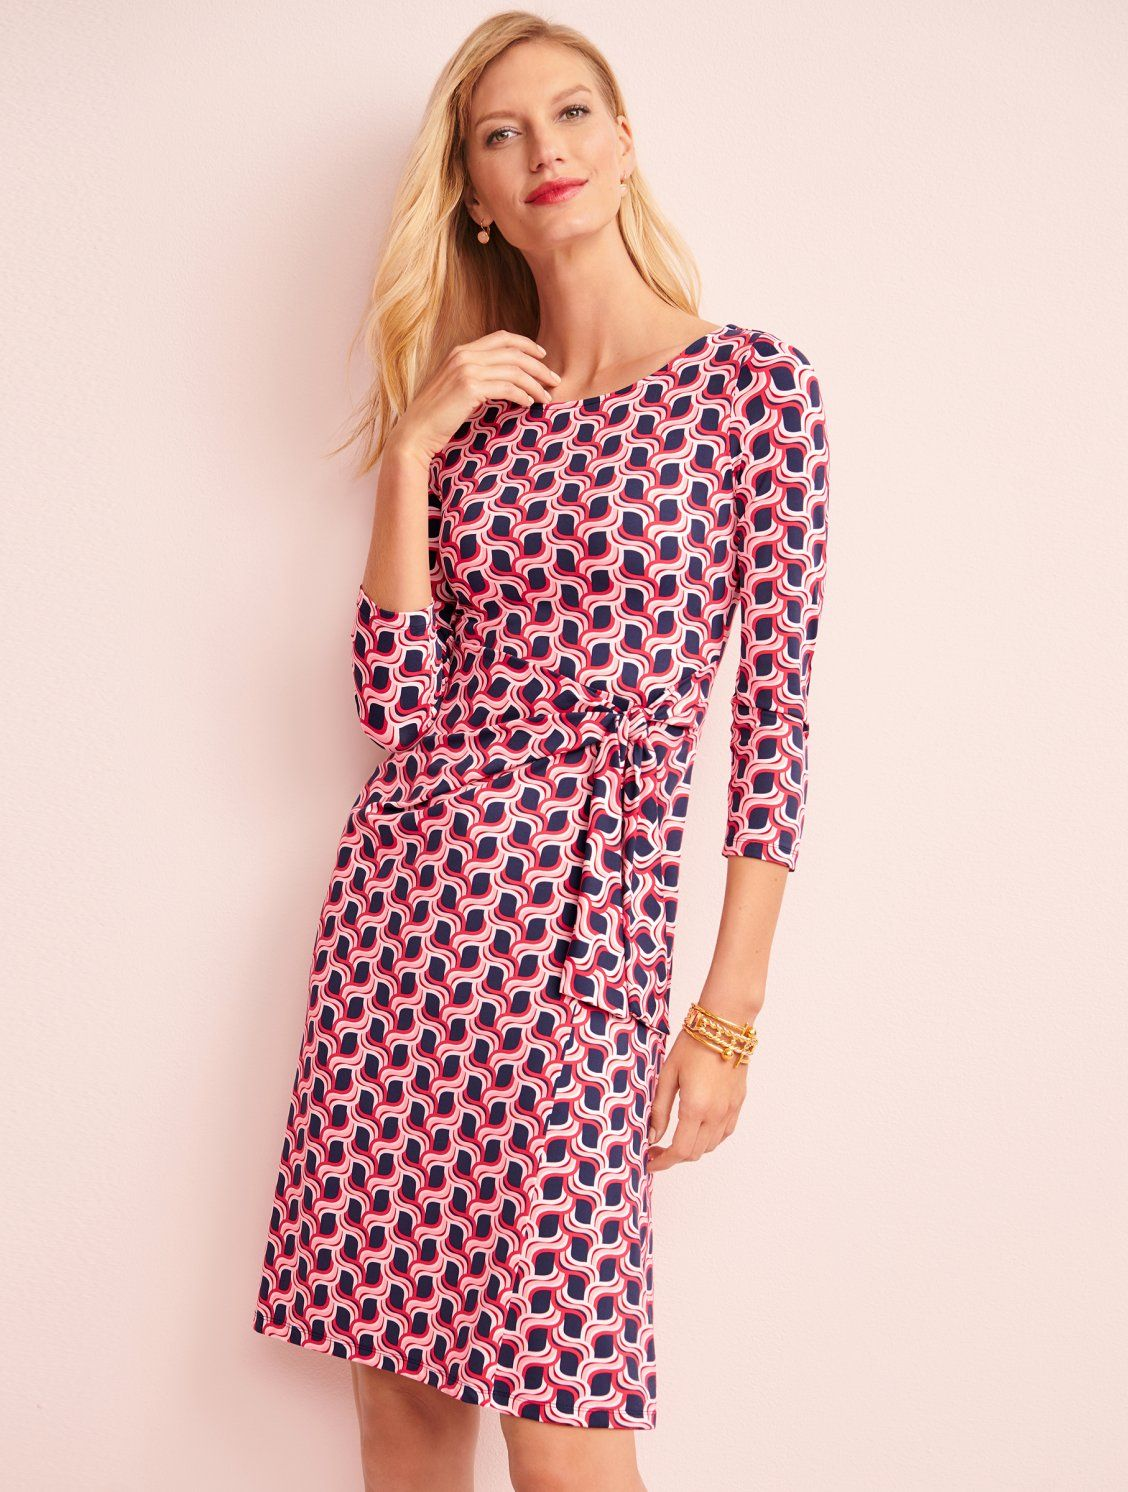 A Lively Print Sheath That S Comfortable To Wear And Easy To Pack Pair This Go To Dress With Boots Casual Dress Outfits Printed Sheath Dresses Talbots Fashion [ 1492 x 1128 Pixel ]